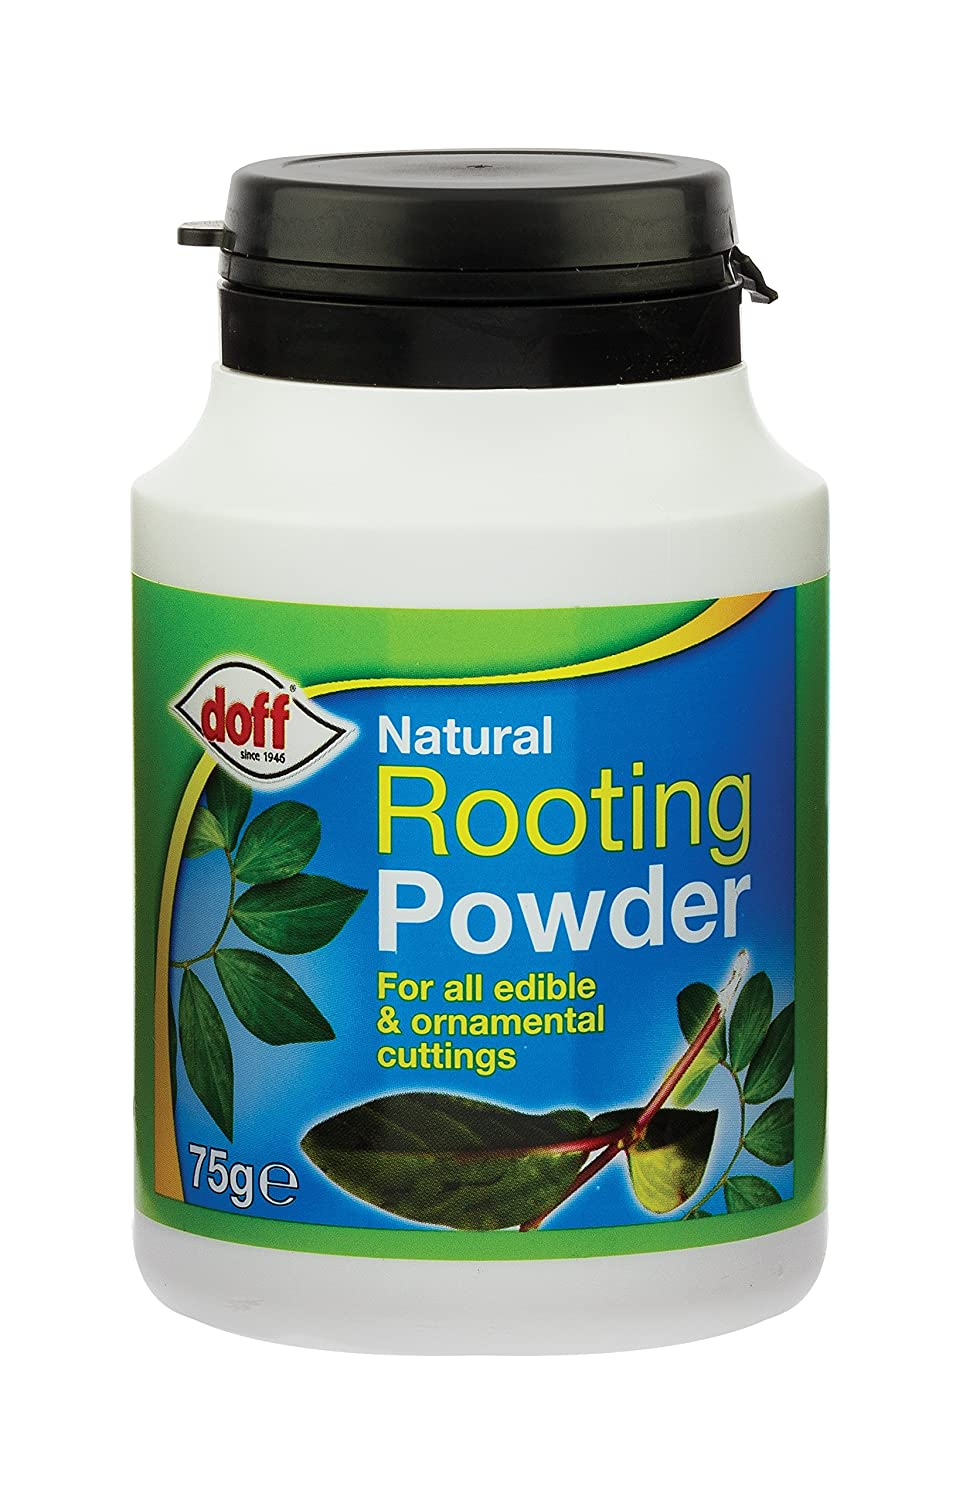 Doff Natural Rooting Powder Promotes Strong Healthy Roots 75g F-KE-075-DFF